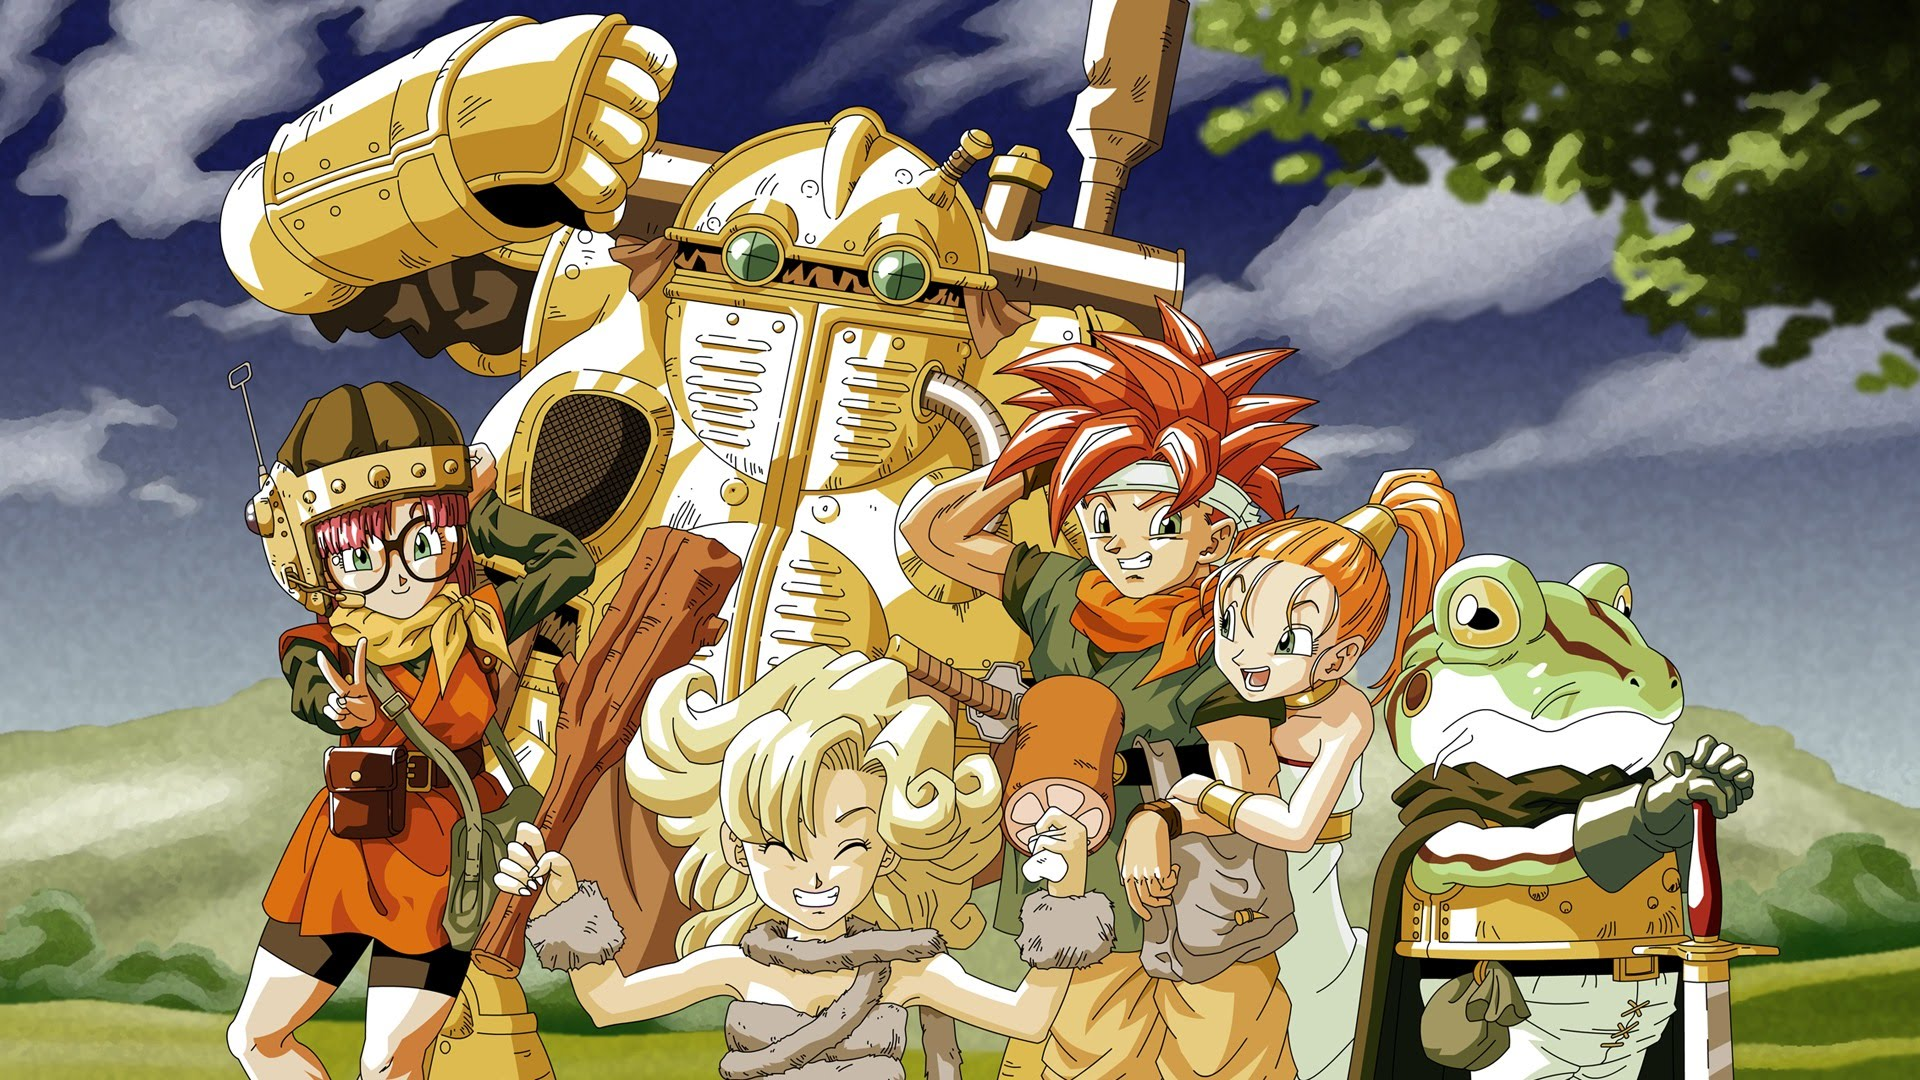 Chrono Trigger on PC will be getting a 'retro graphics' option